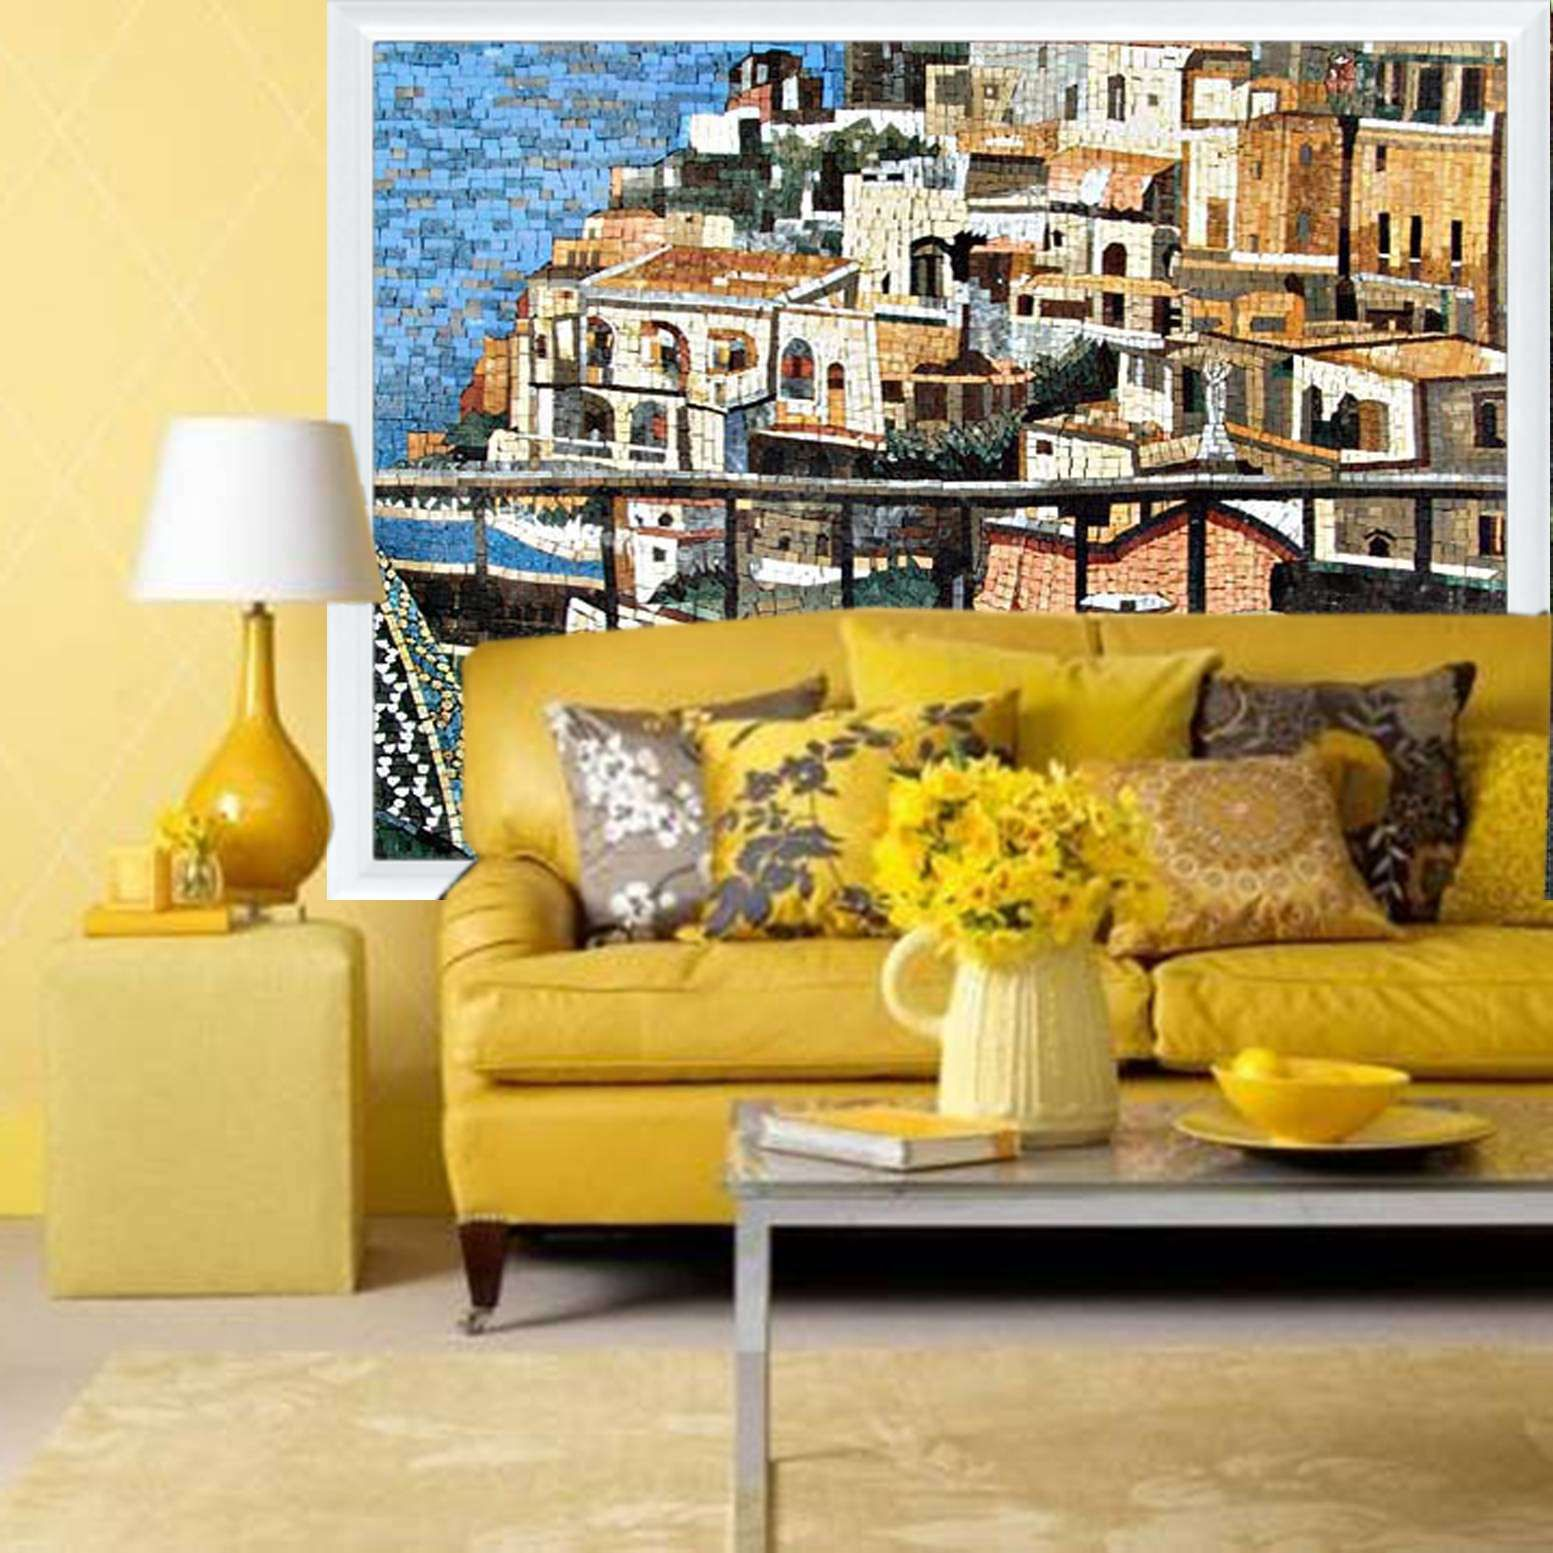 How to decorate your home from the Goodwill and Dollar | Room ...